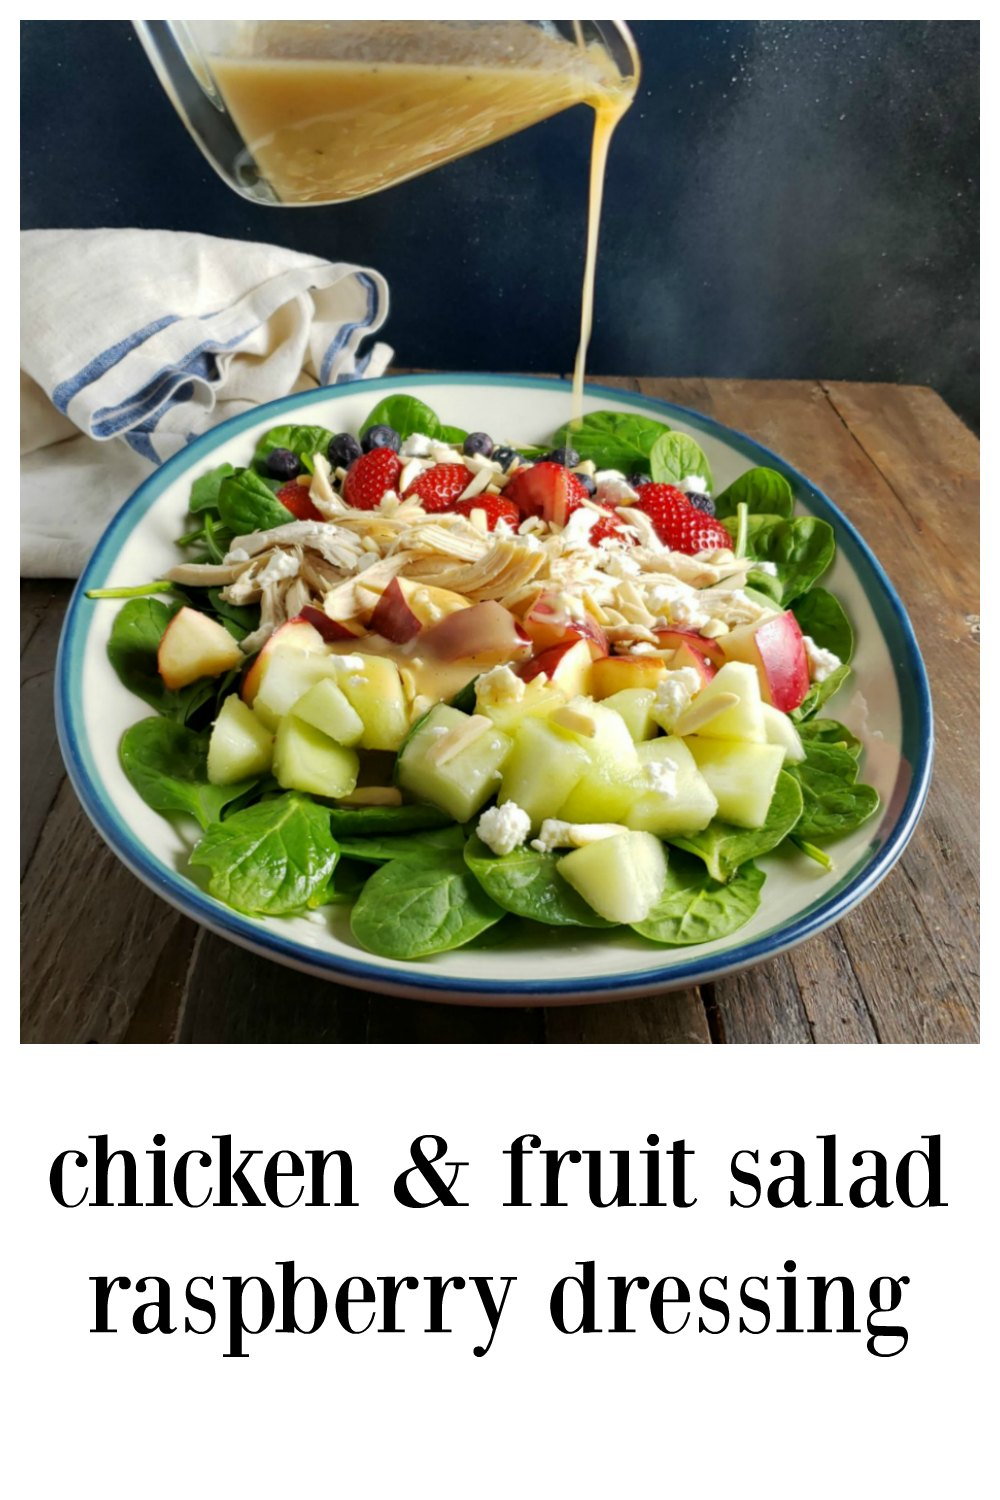 Chicken & Fruit Salad with Raspberry Dressing - Your fave fruits & salad greens with a creamy honey, yogurt raspberry dressing! #ChickenSalad #Salad #MainDishChickenSalad